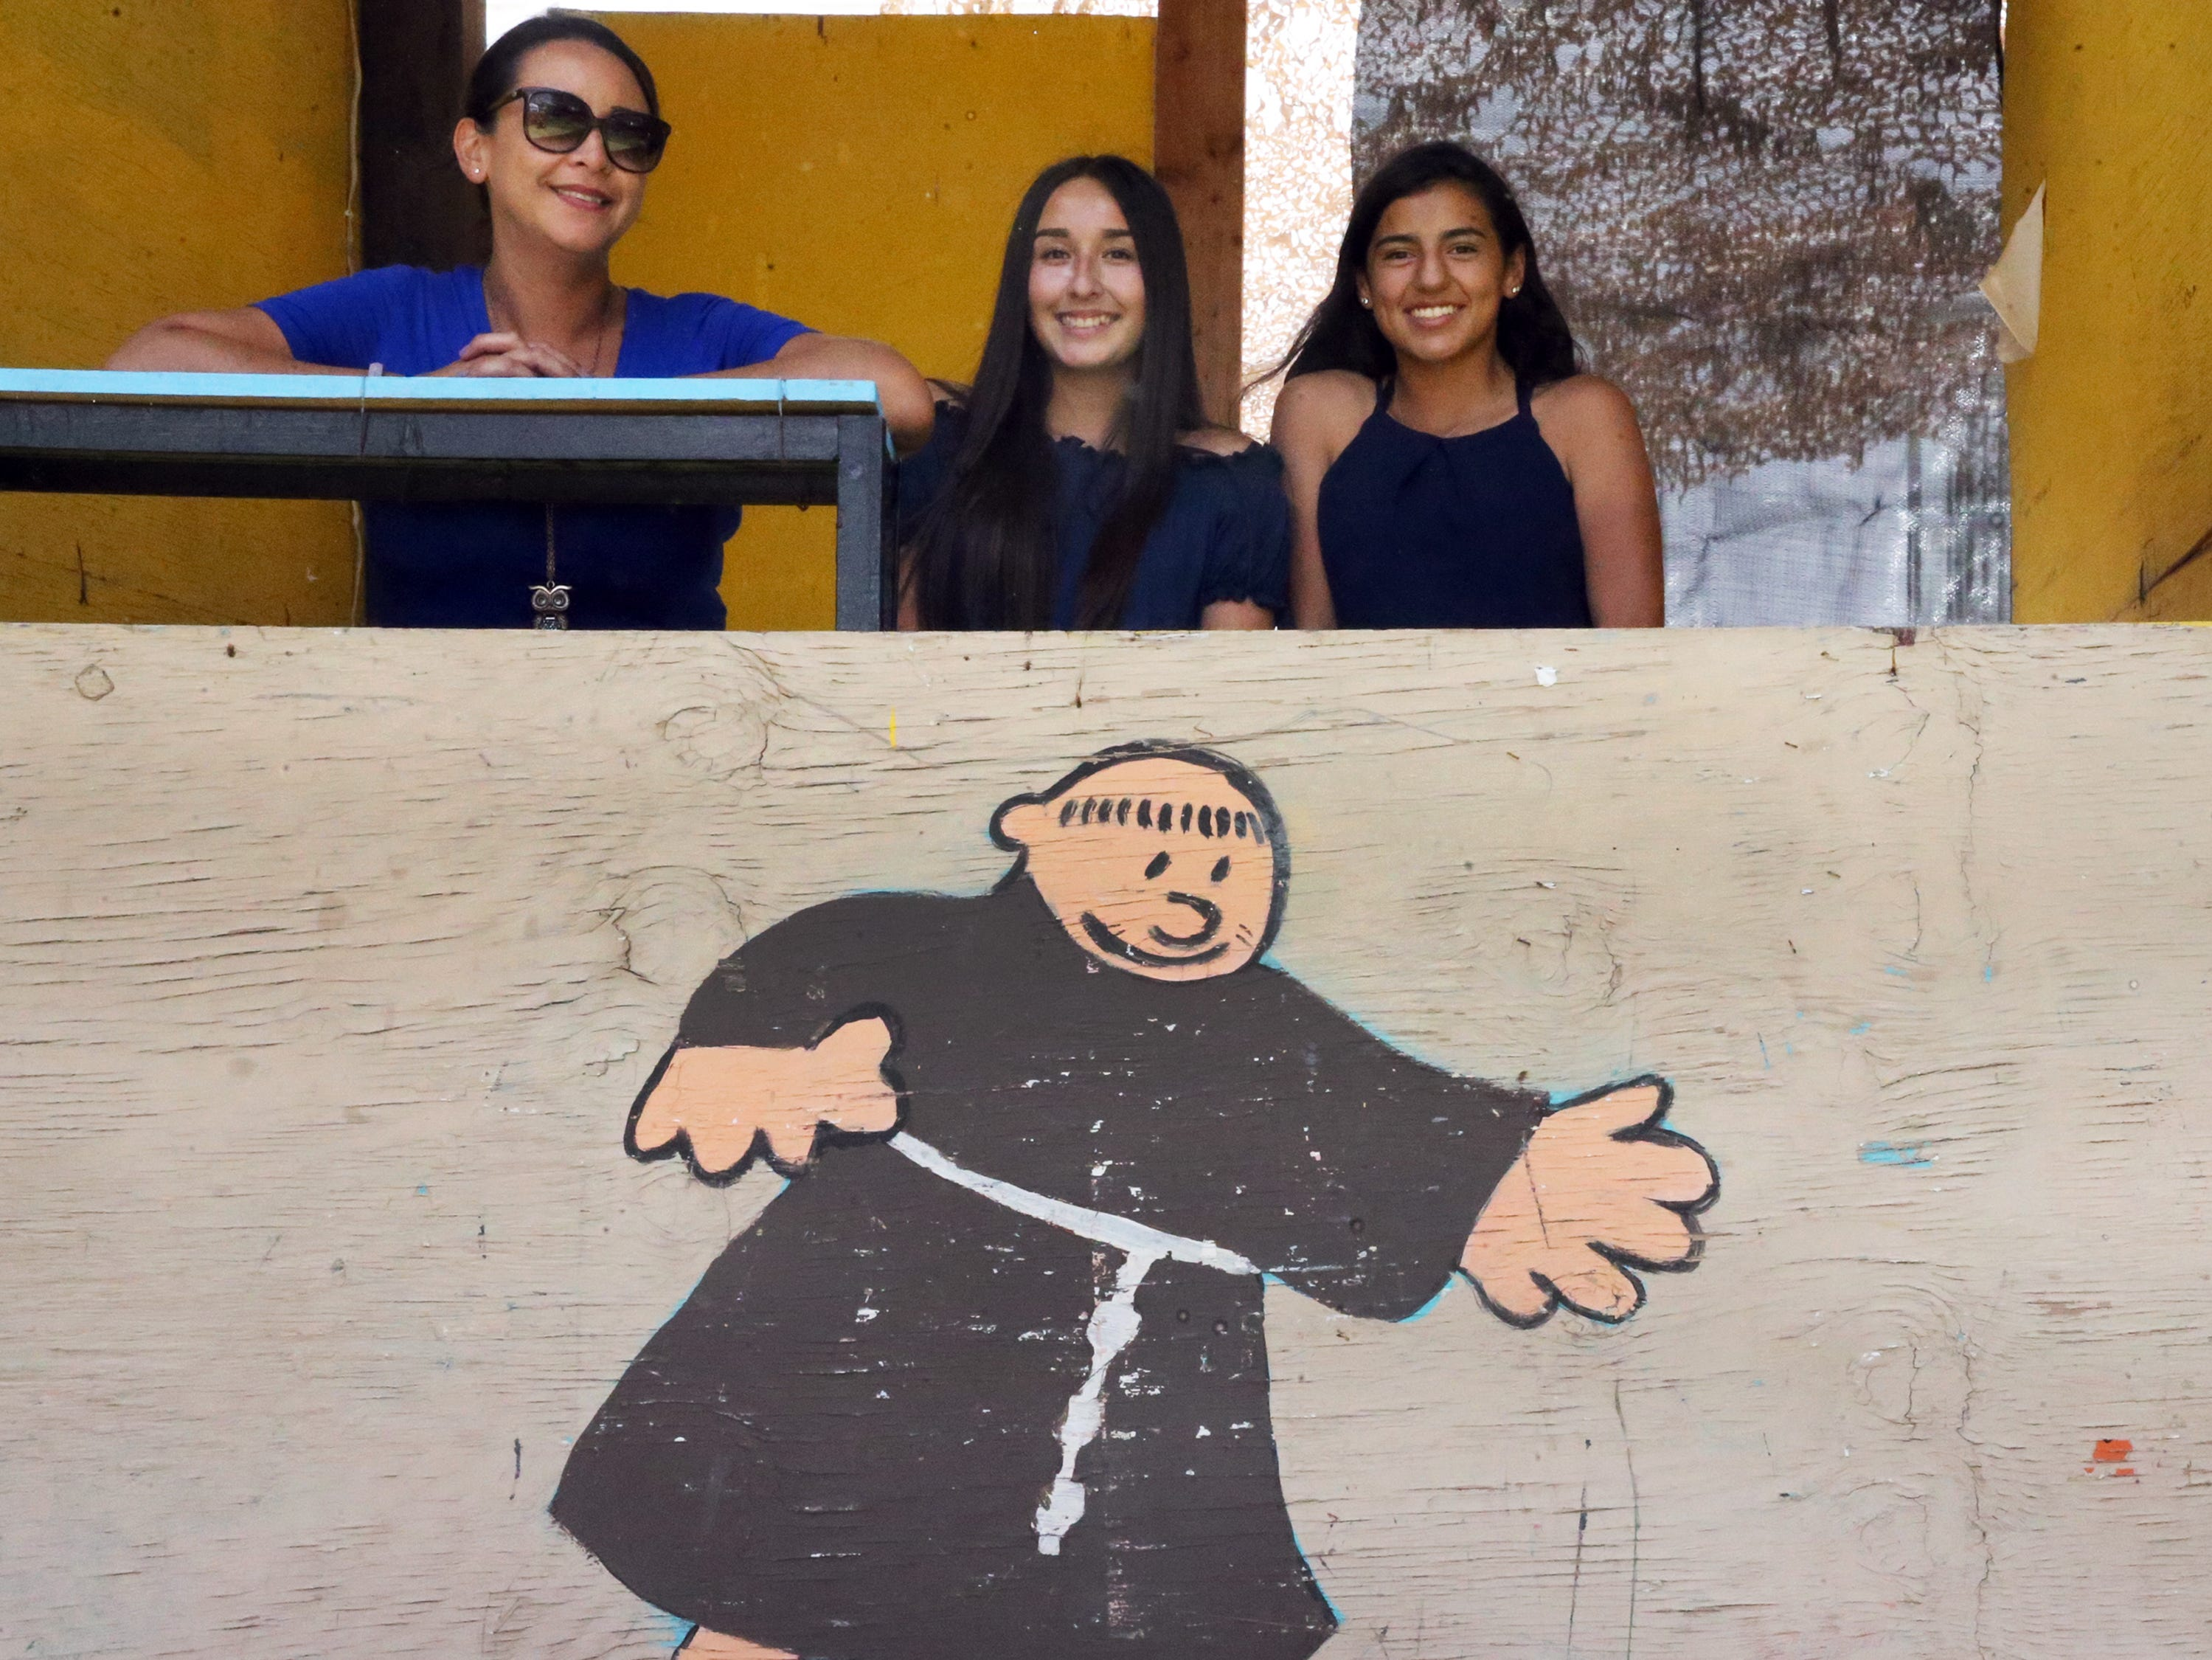 Lizette Anguiano, left, with daughter Julie Anguiano, center, and niece Alexis Anguiano at a soda booth Saturday.